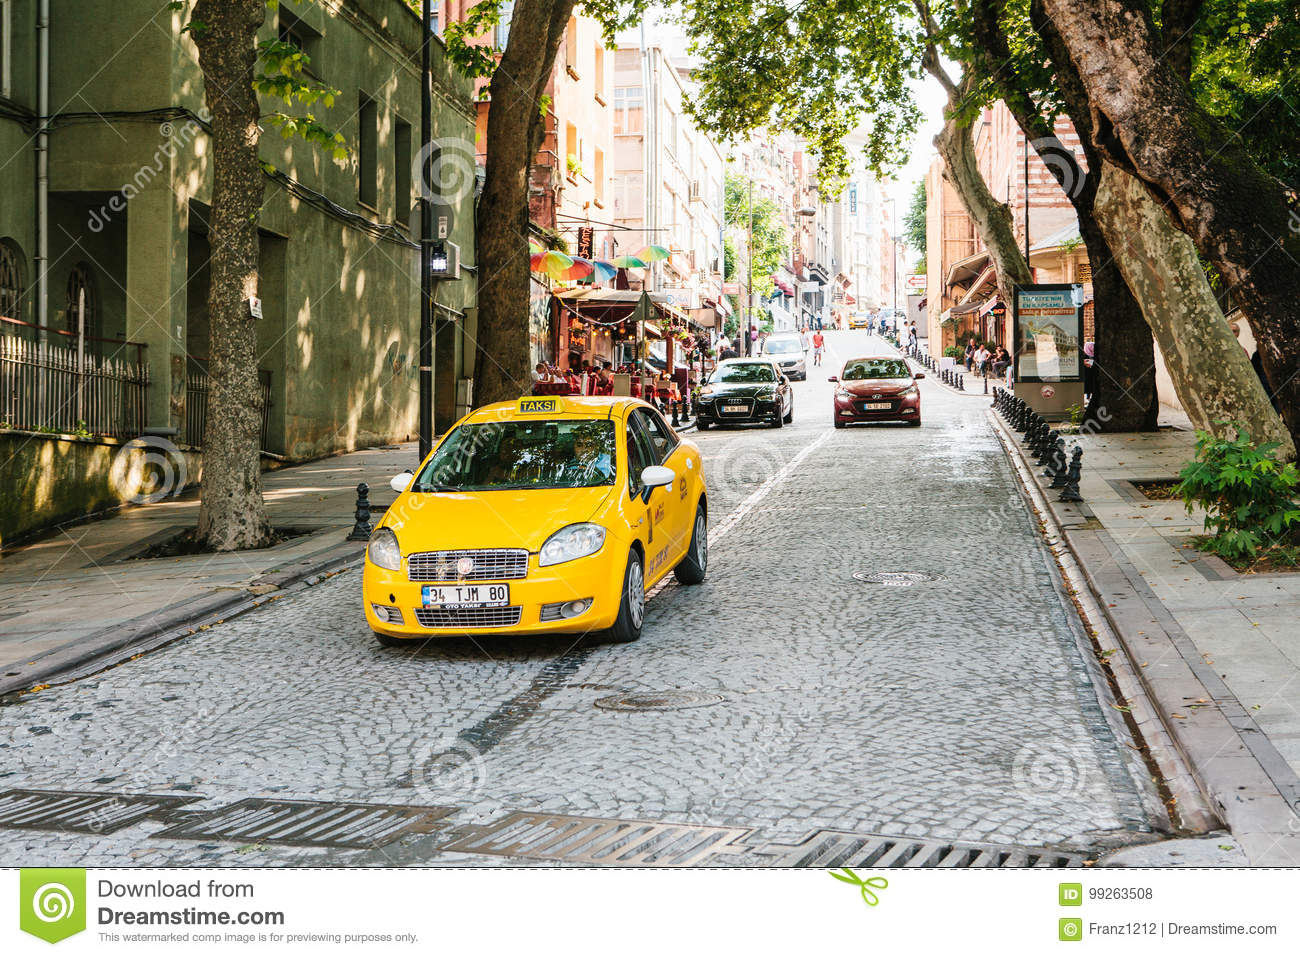 Istanbul, June 15, 2017: A Traditional Yellow Taxi Rides On